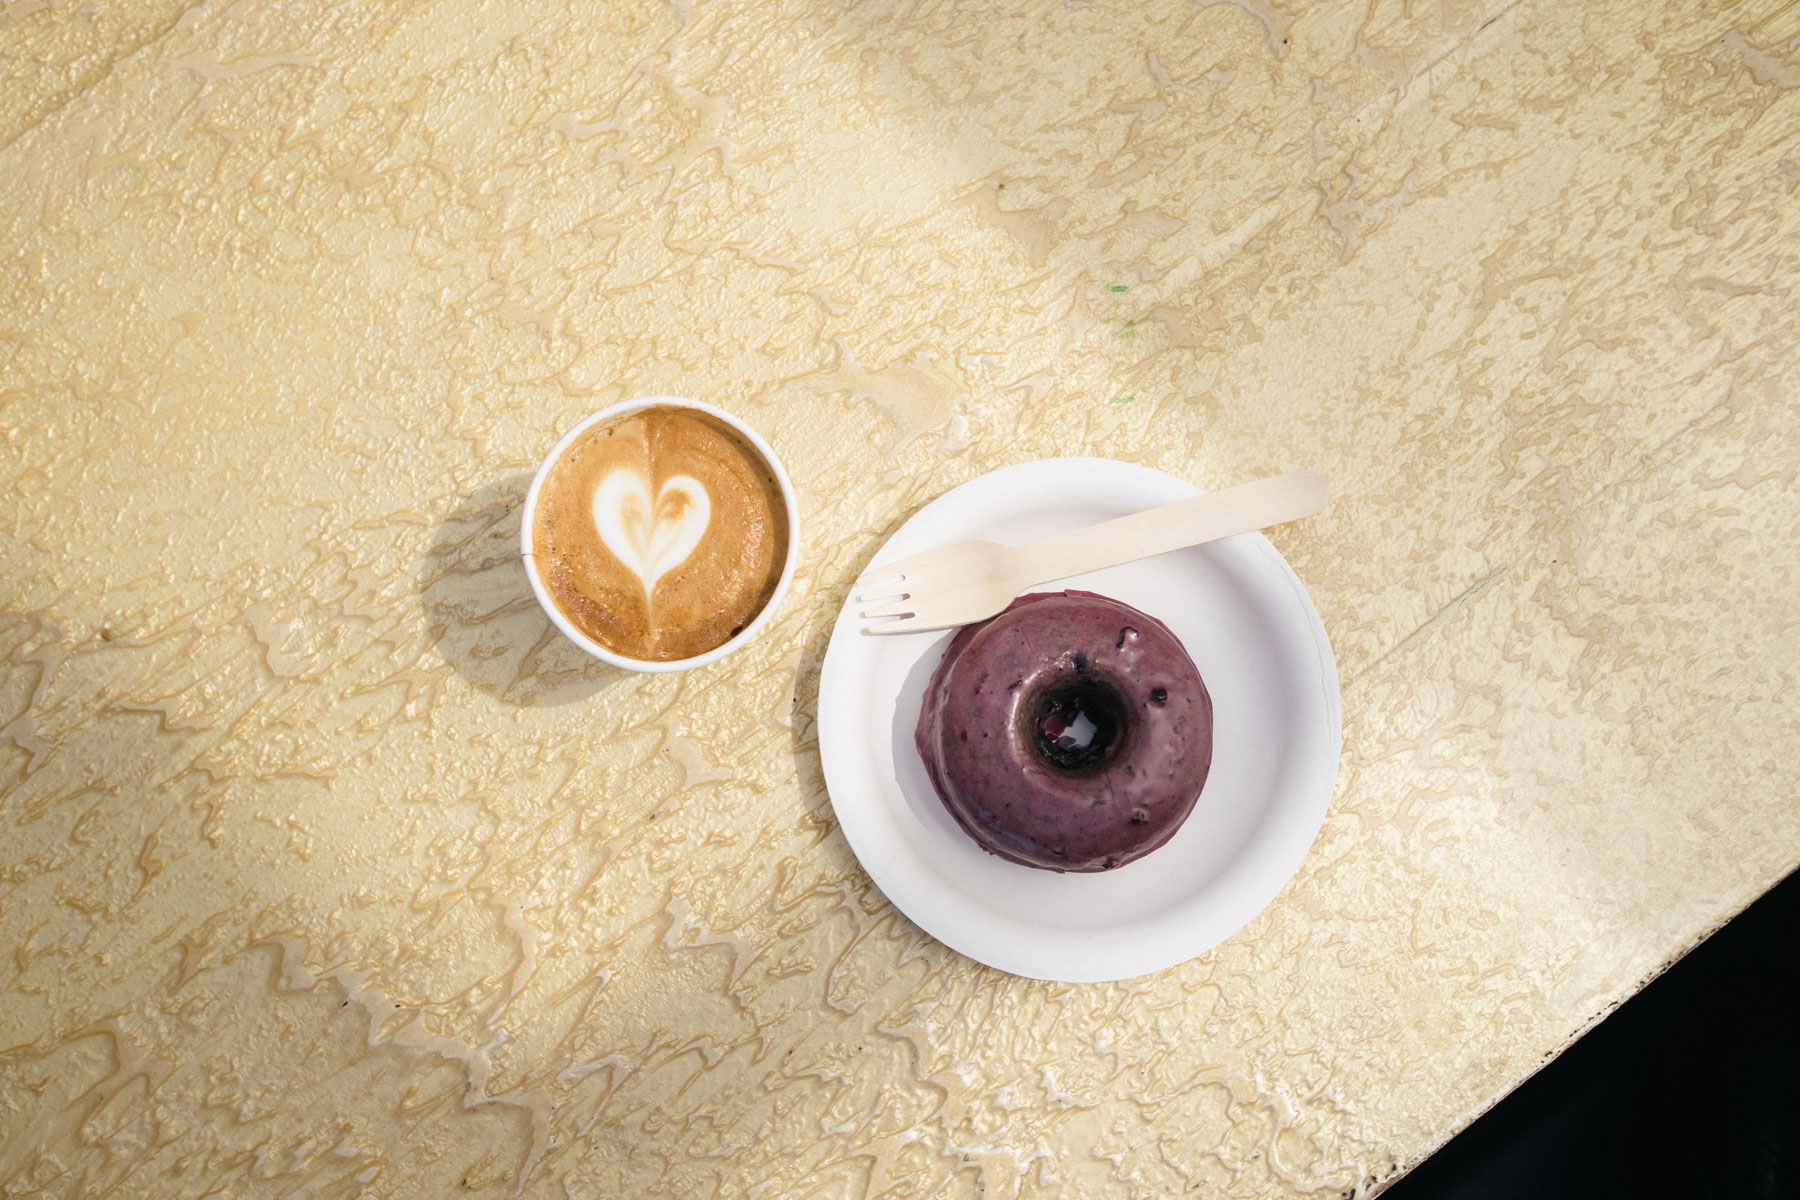 los-angeles-cray-coffee-spots-you-need-to-know-about-andante-line-cafe-deus-graffiti-sublime-intelligentsia-stumptown-3